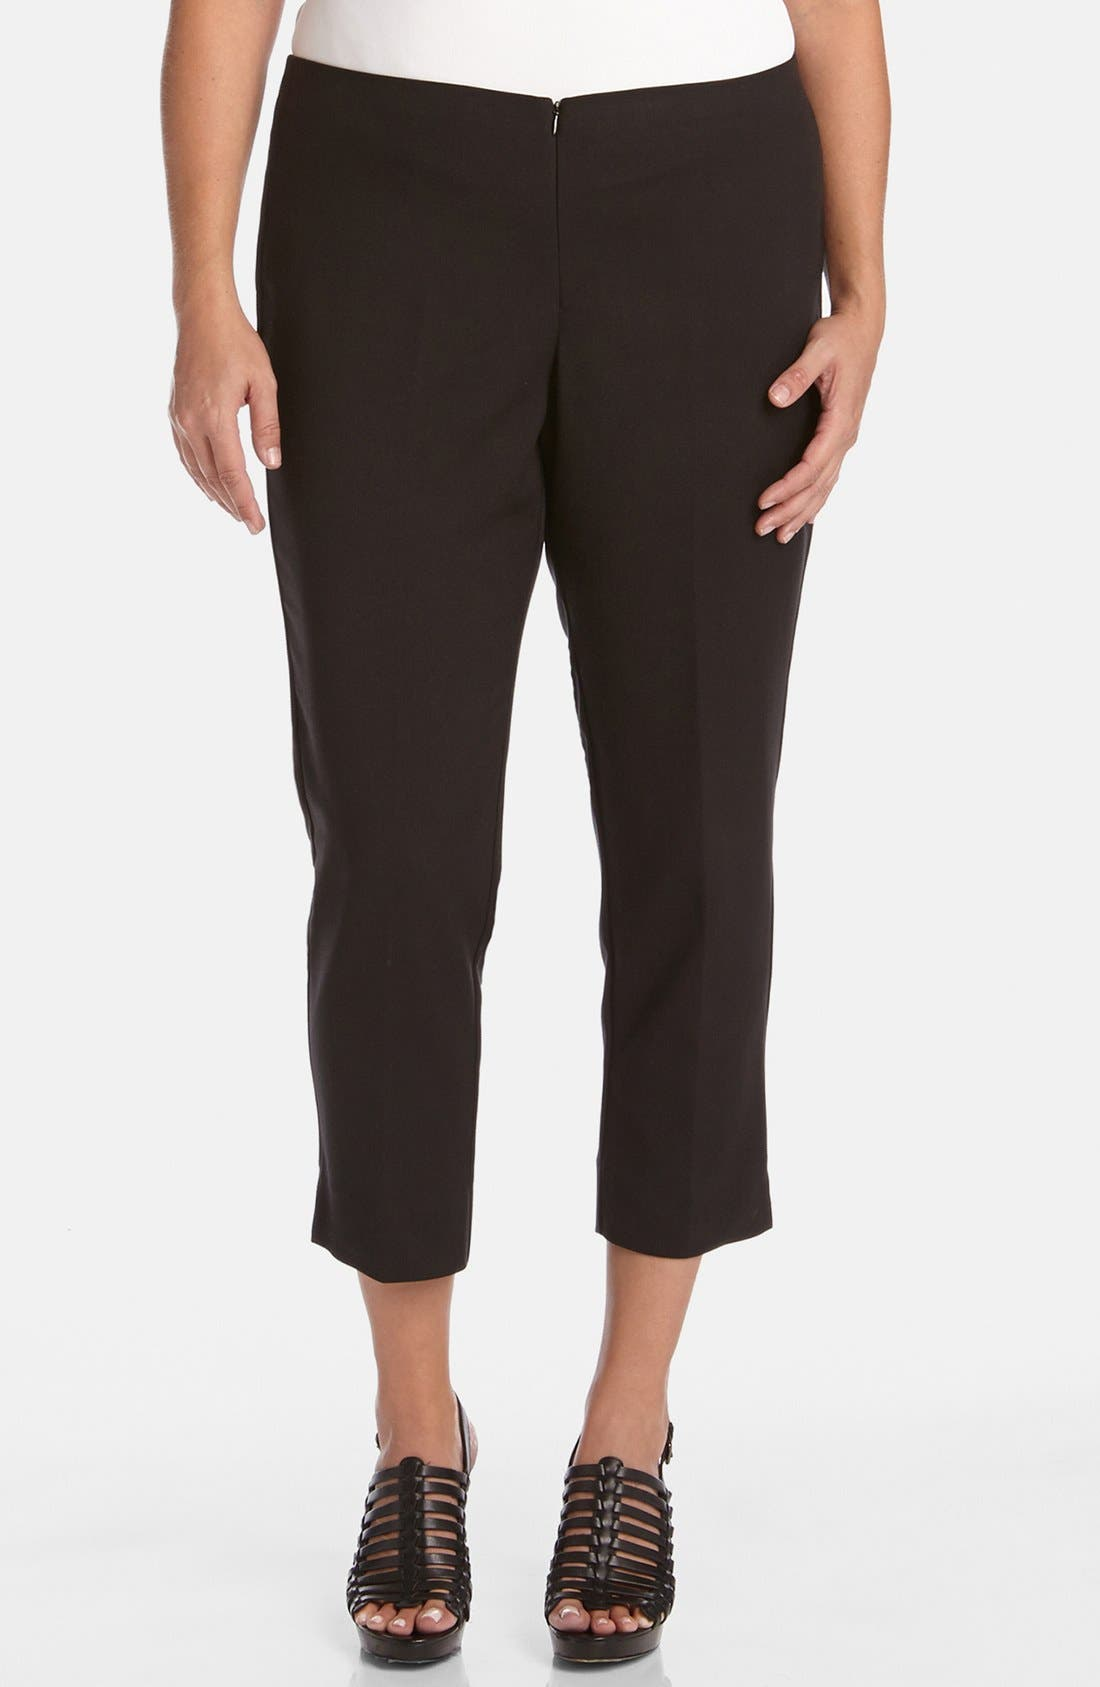 Plus Size Karen Kane Stretch Capri Pants, Black